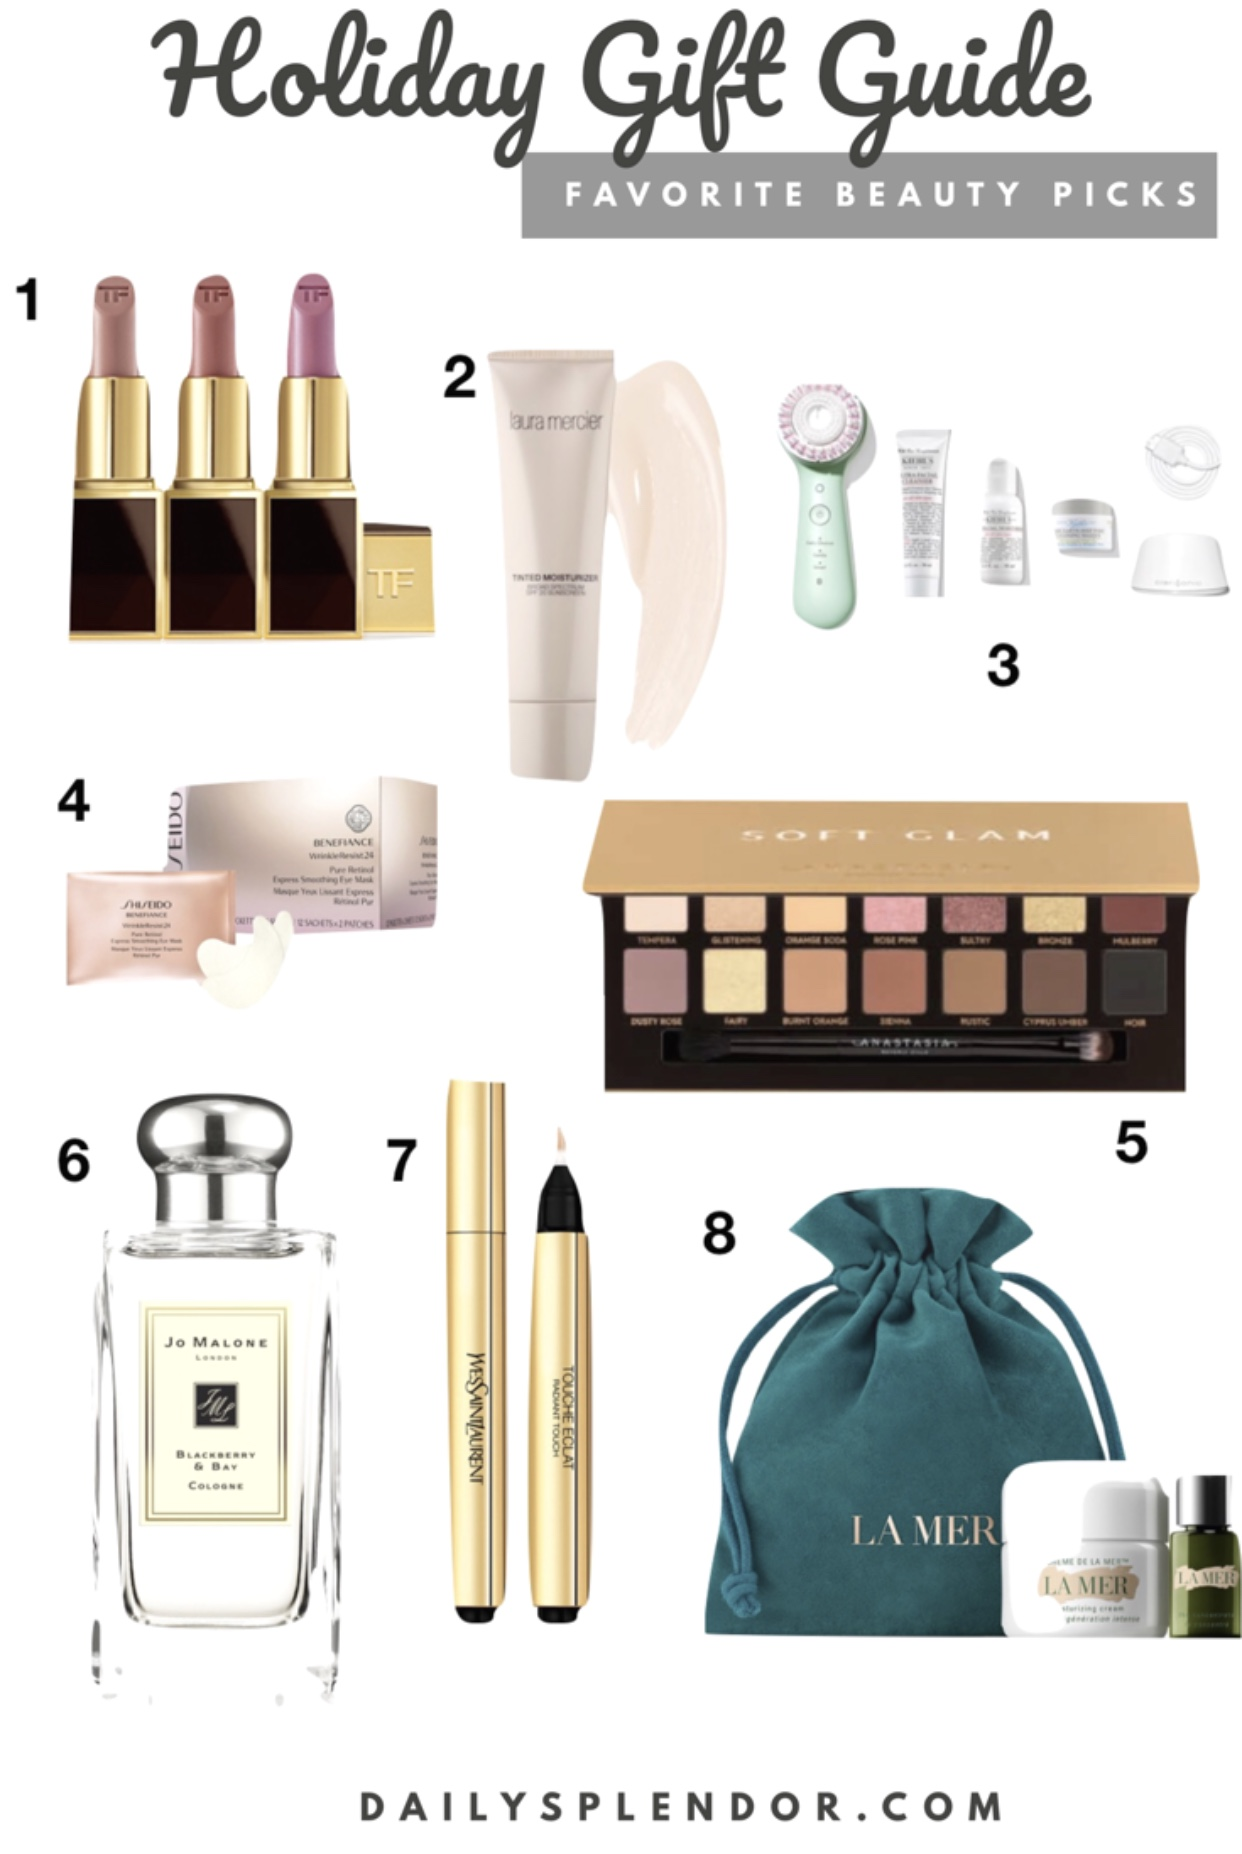 2018 Holiday Beauty Gift Guide | Daily Splendor Life and Style Blog | #giftguide #holidaygiftguide #2018giftguide #womensgiftideas #tomford #clarisonic #Cremedelamer #sephora #nordstrom